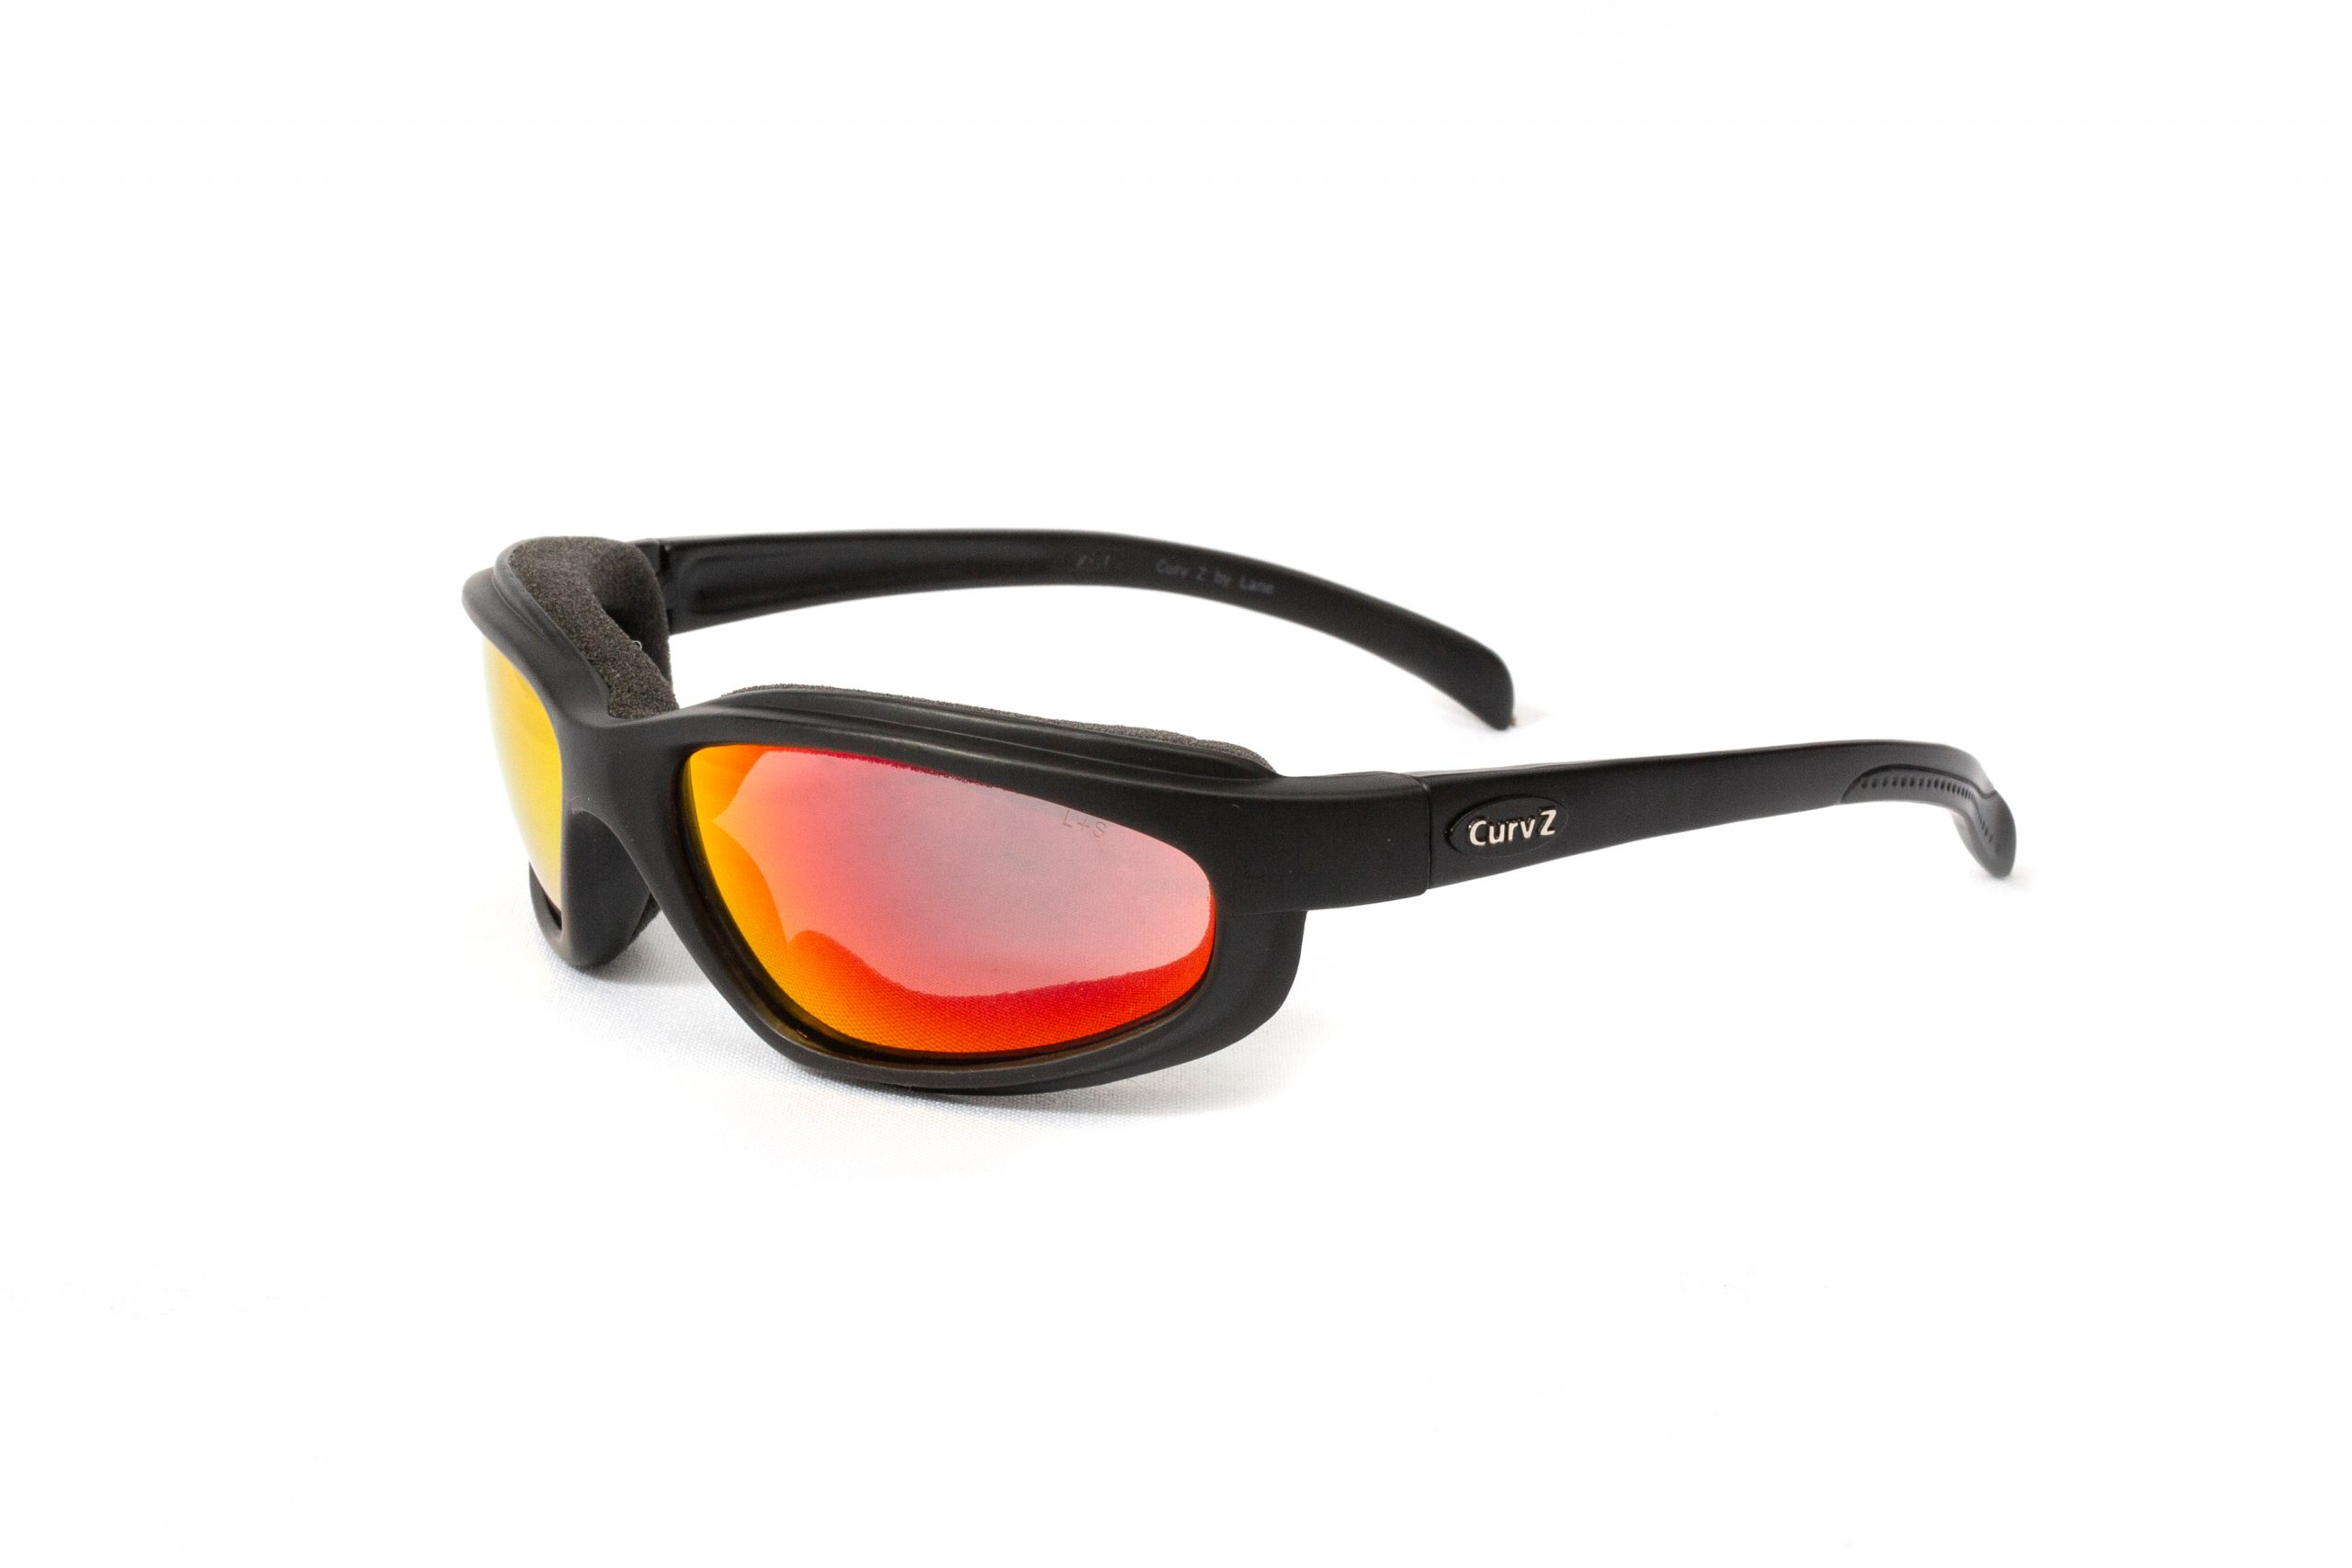 02-21 - CurvZ Fire Red Sunglasses in Matte Black Frames and Fire Red Lenses